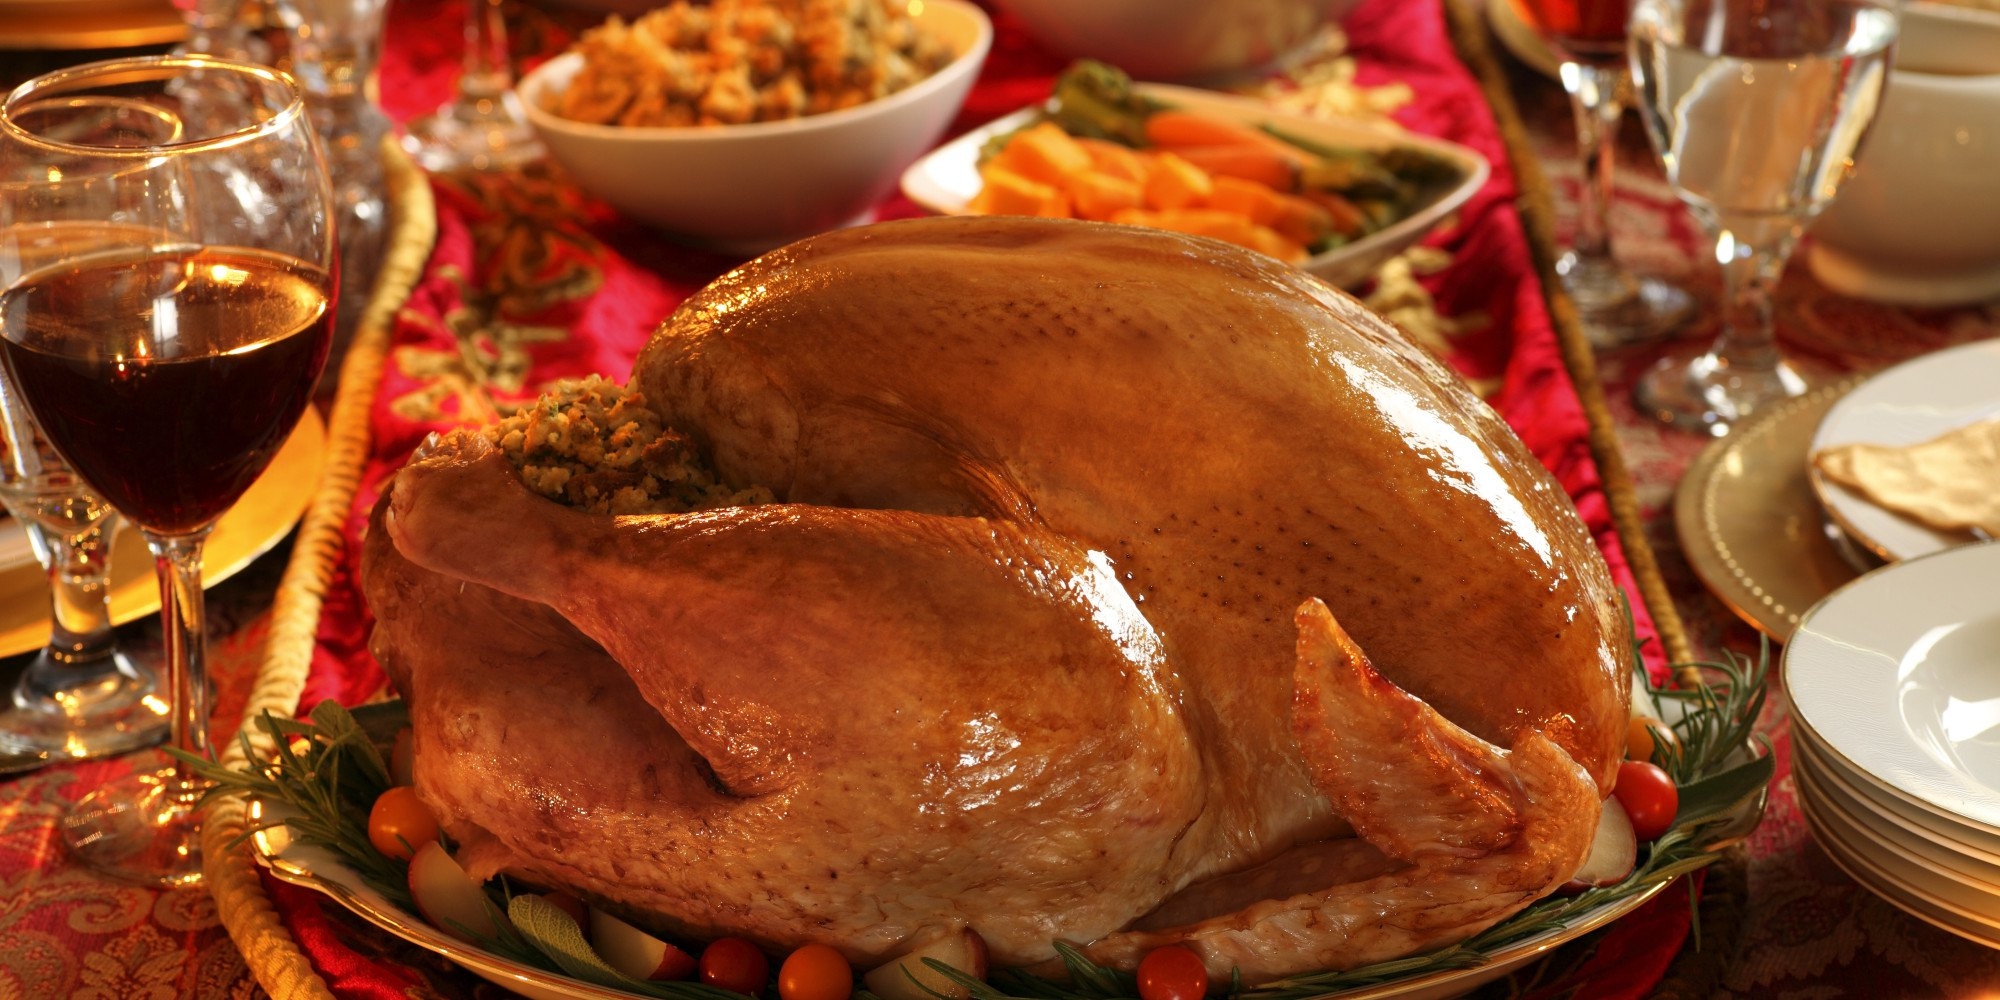 Restaurant Thanksgiving Dinner  Can't Cook R4L s Top 5 Restaurants Serving Thanksgiving